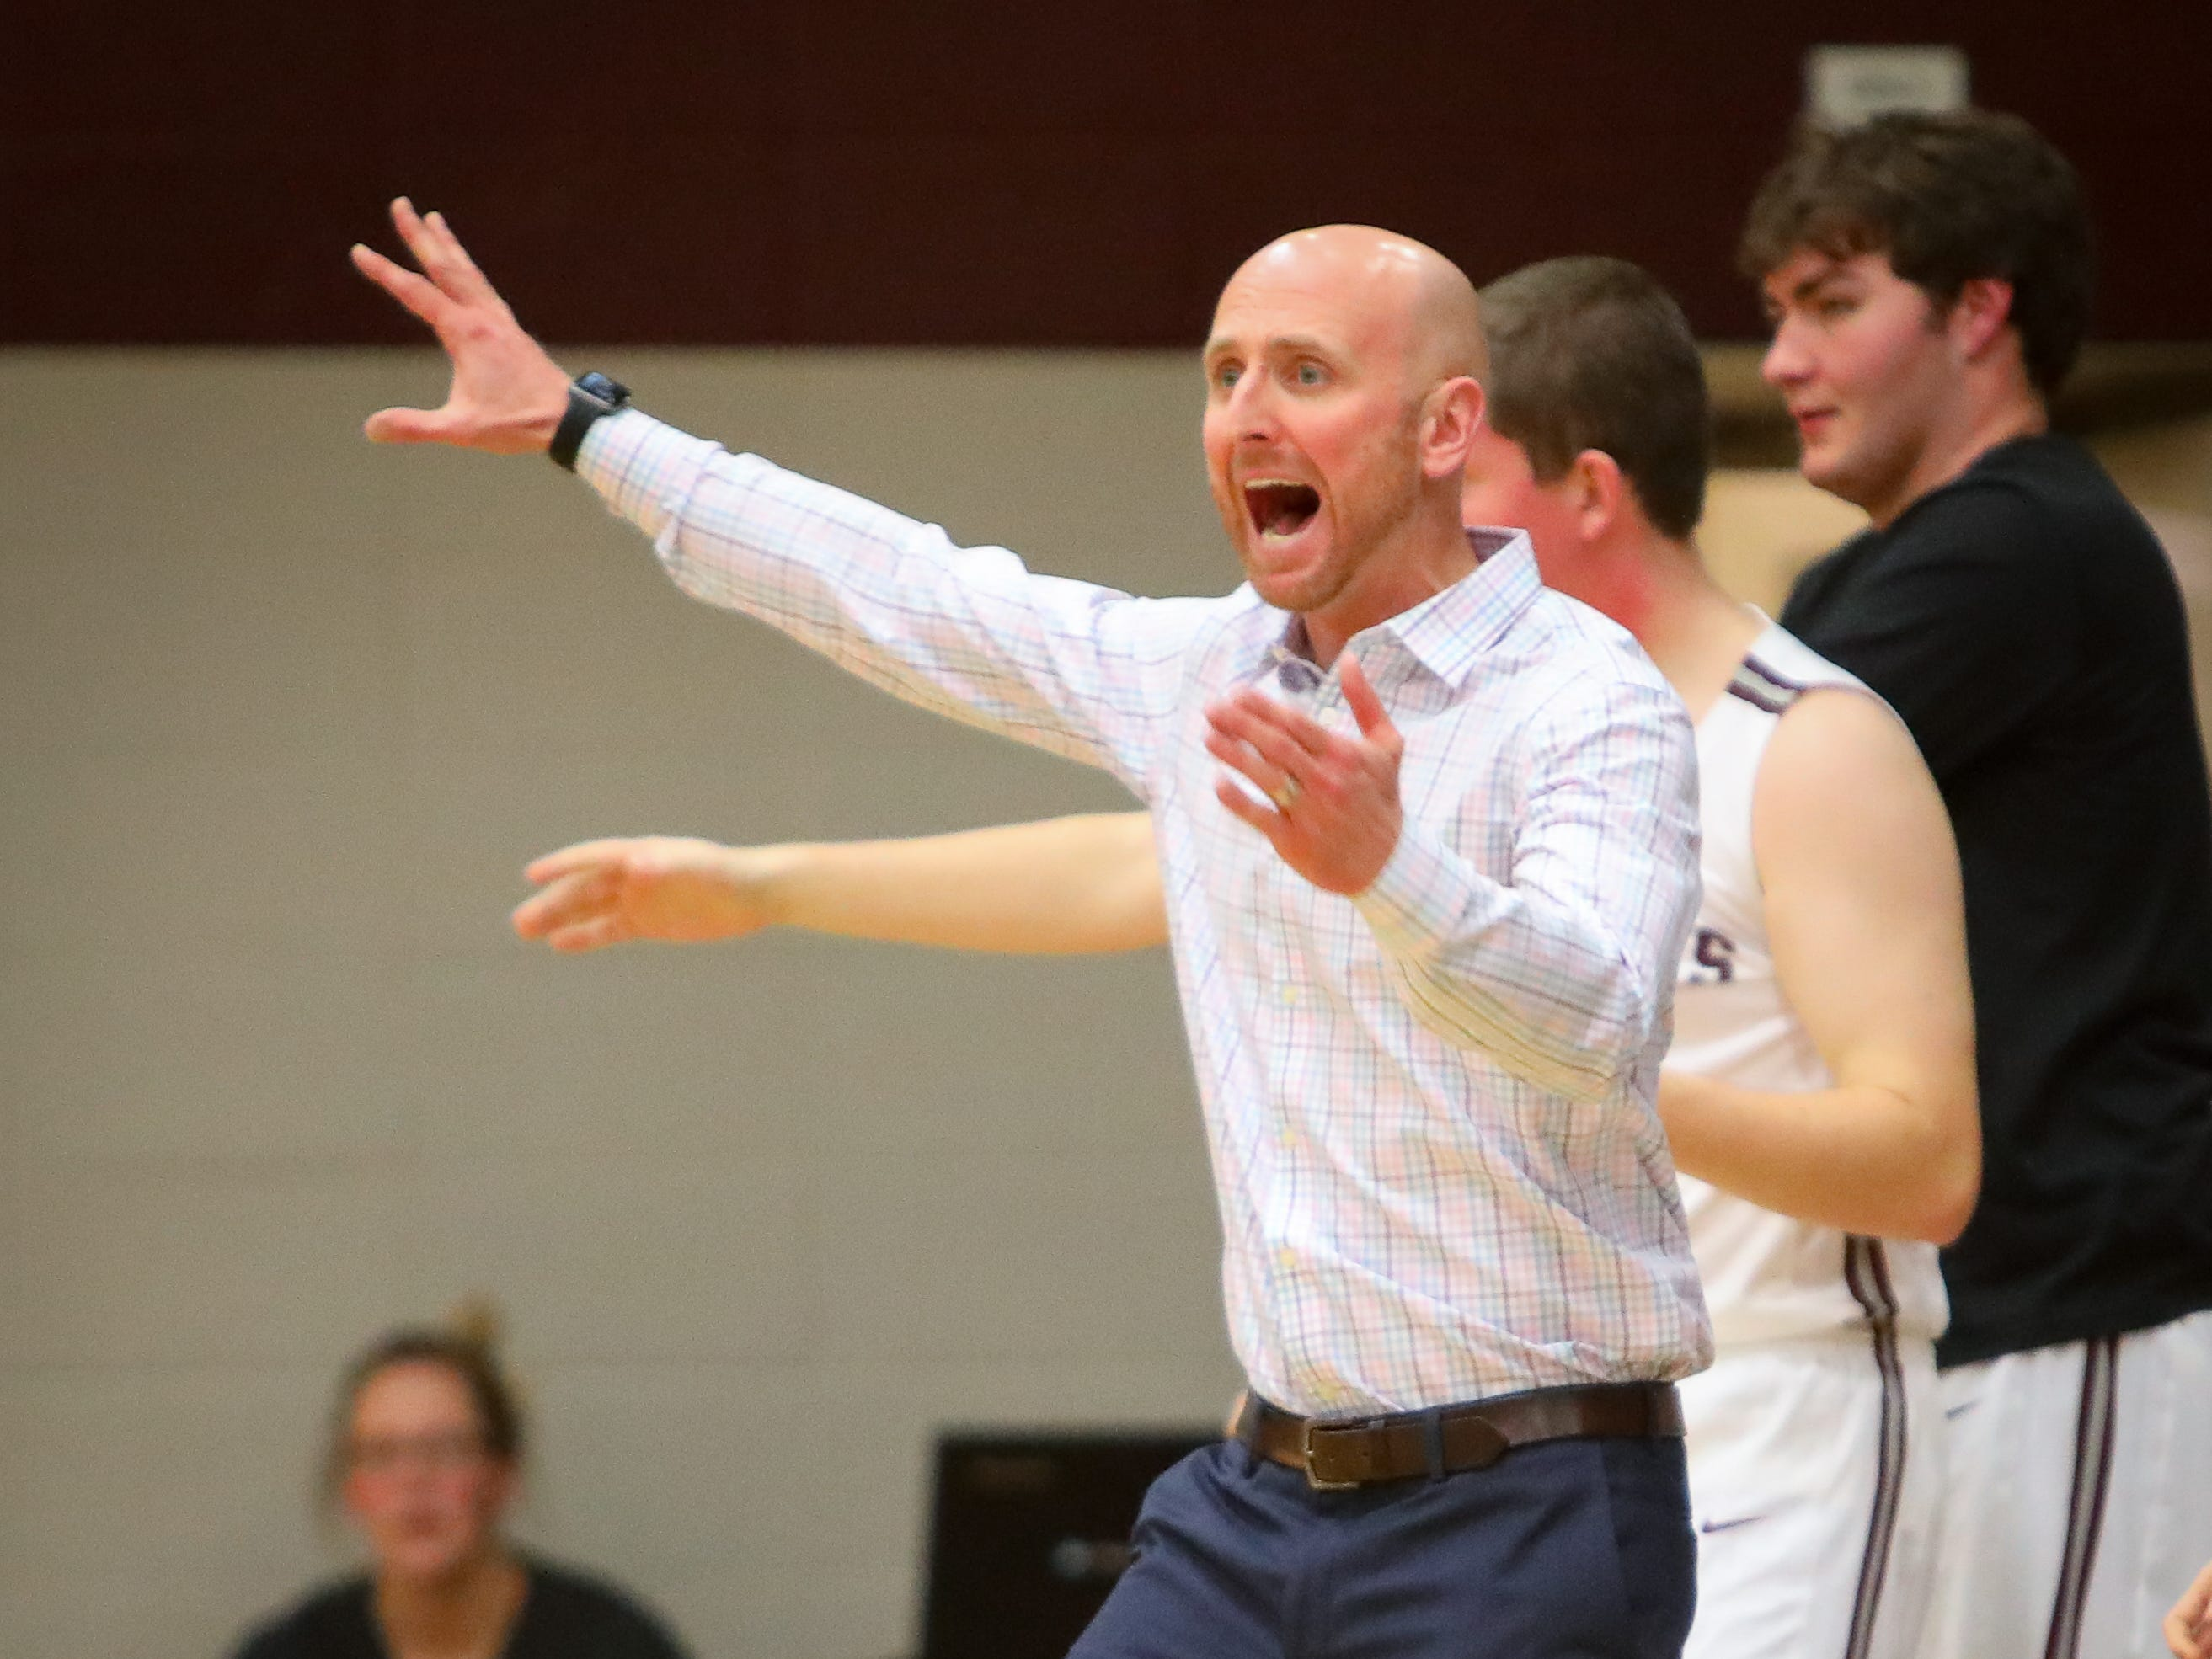 Dowling head coach Mike O'Connor reacts after a play during a boys high school basketball game between the Urbandale J-Hawks and the Dowling Catholic Maroons at Dowling Catholic High School on Jan. 11, 2019 in West Des Moines, Iowa.